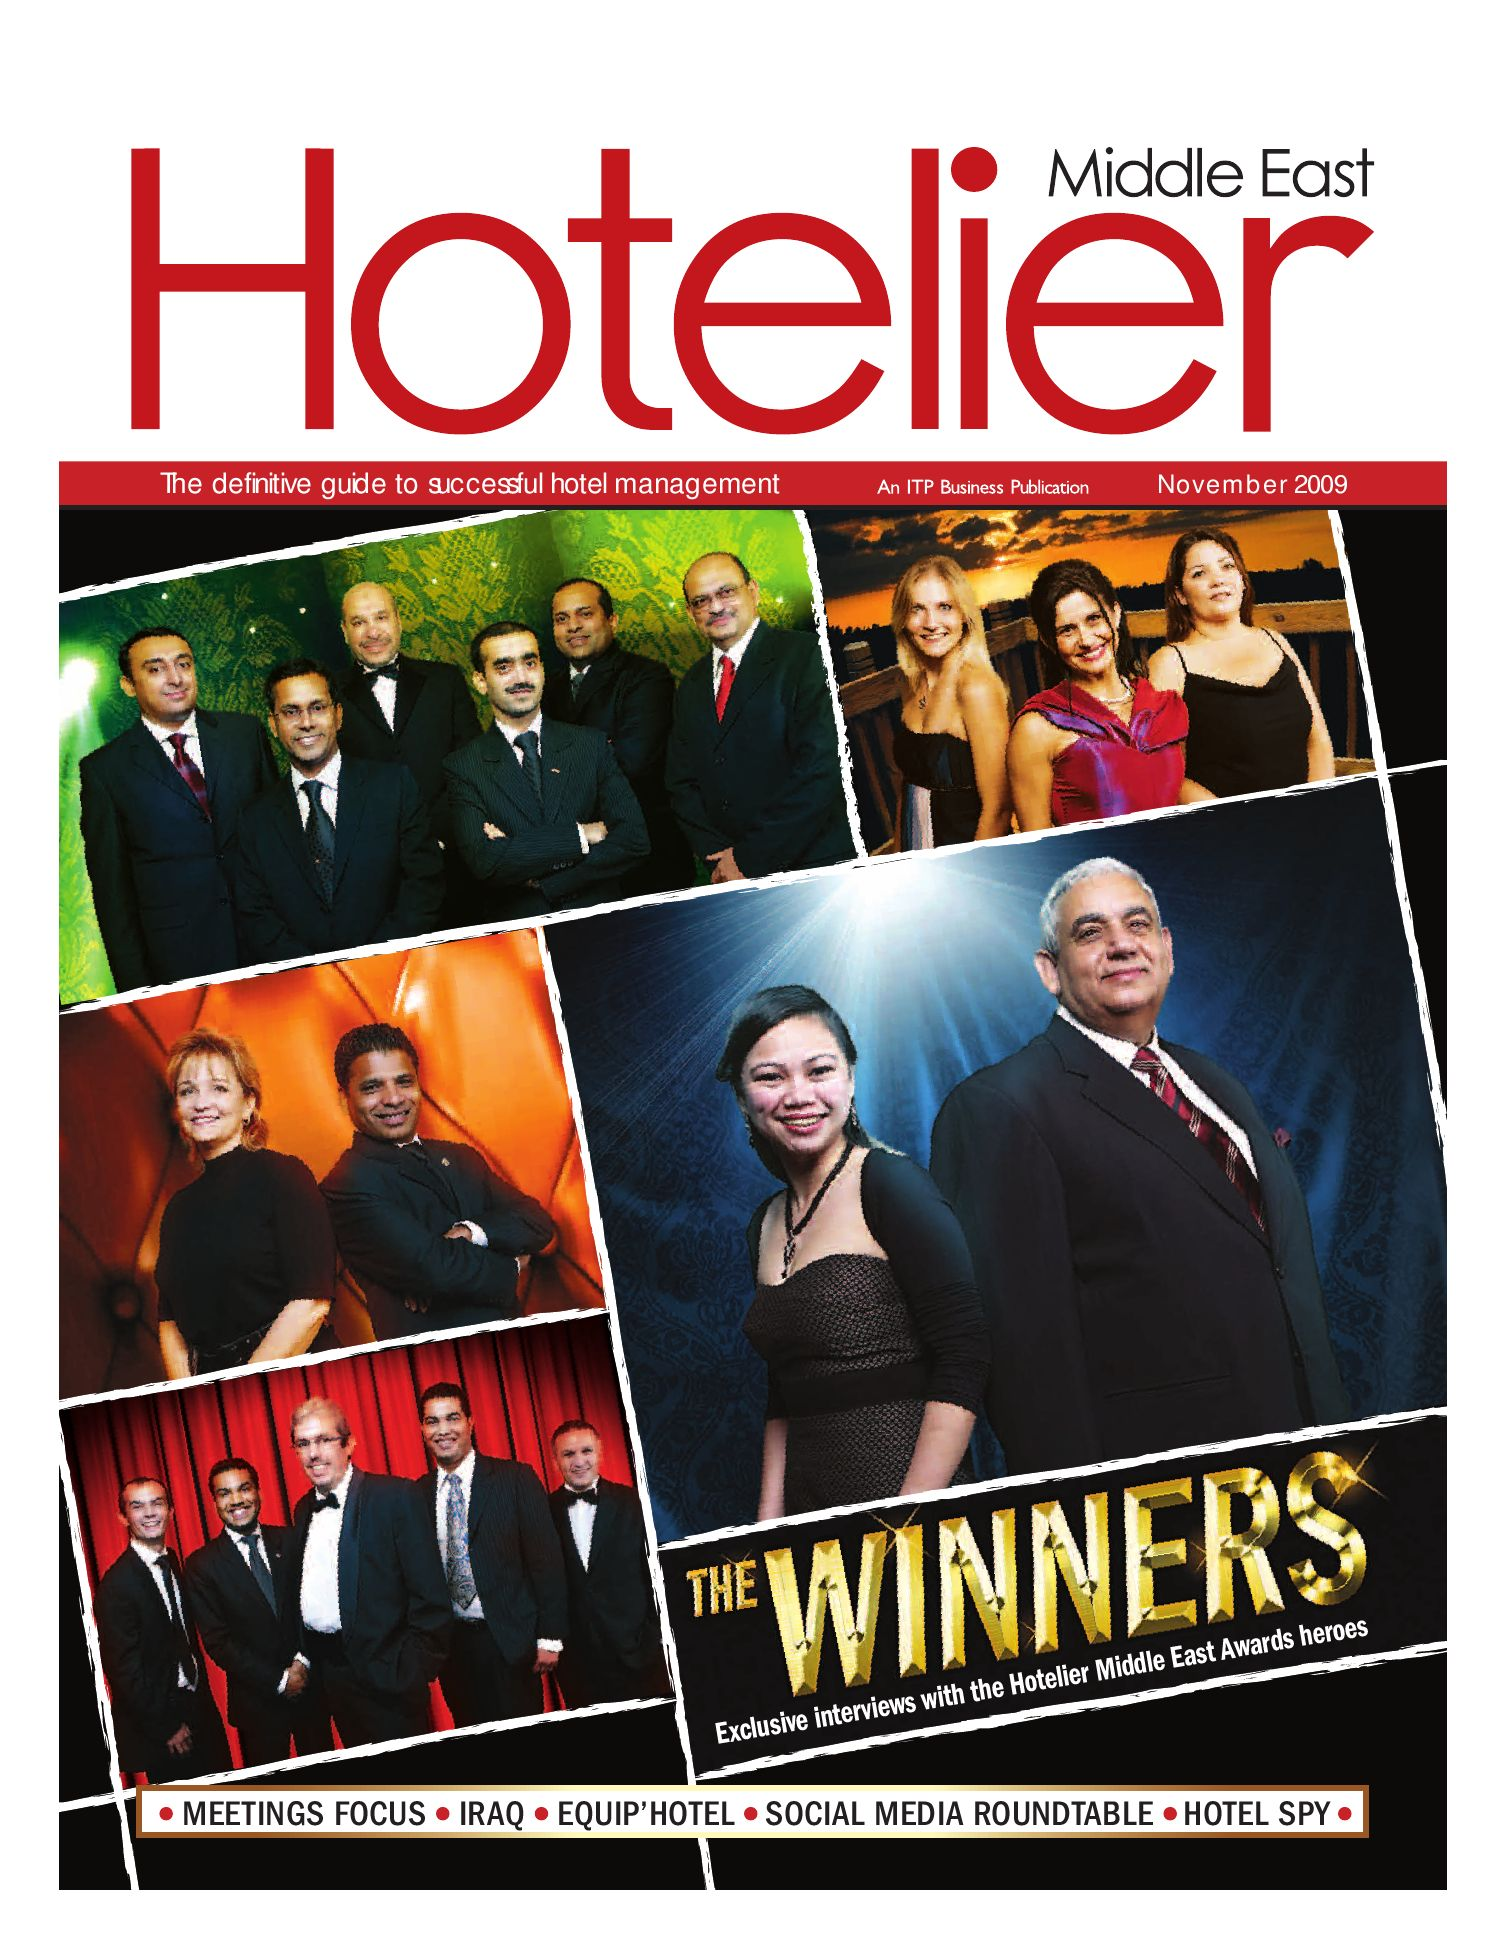 Hotelier Middle East - Nov 2009 by ITP Business Publishing - issuu